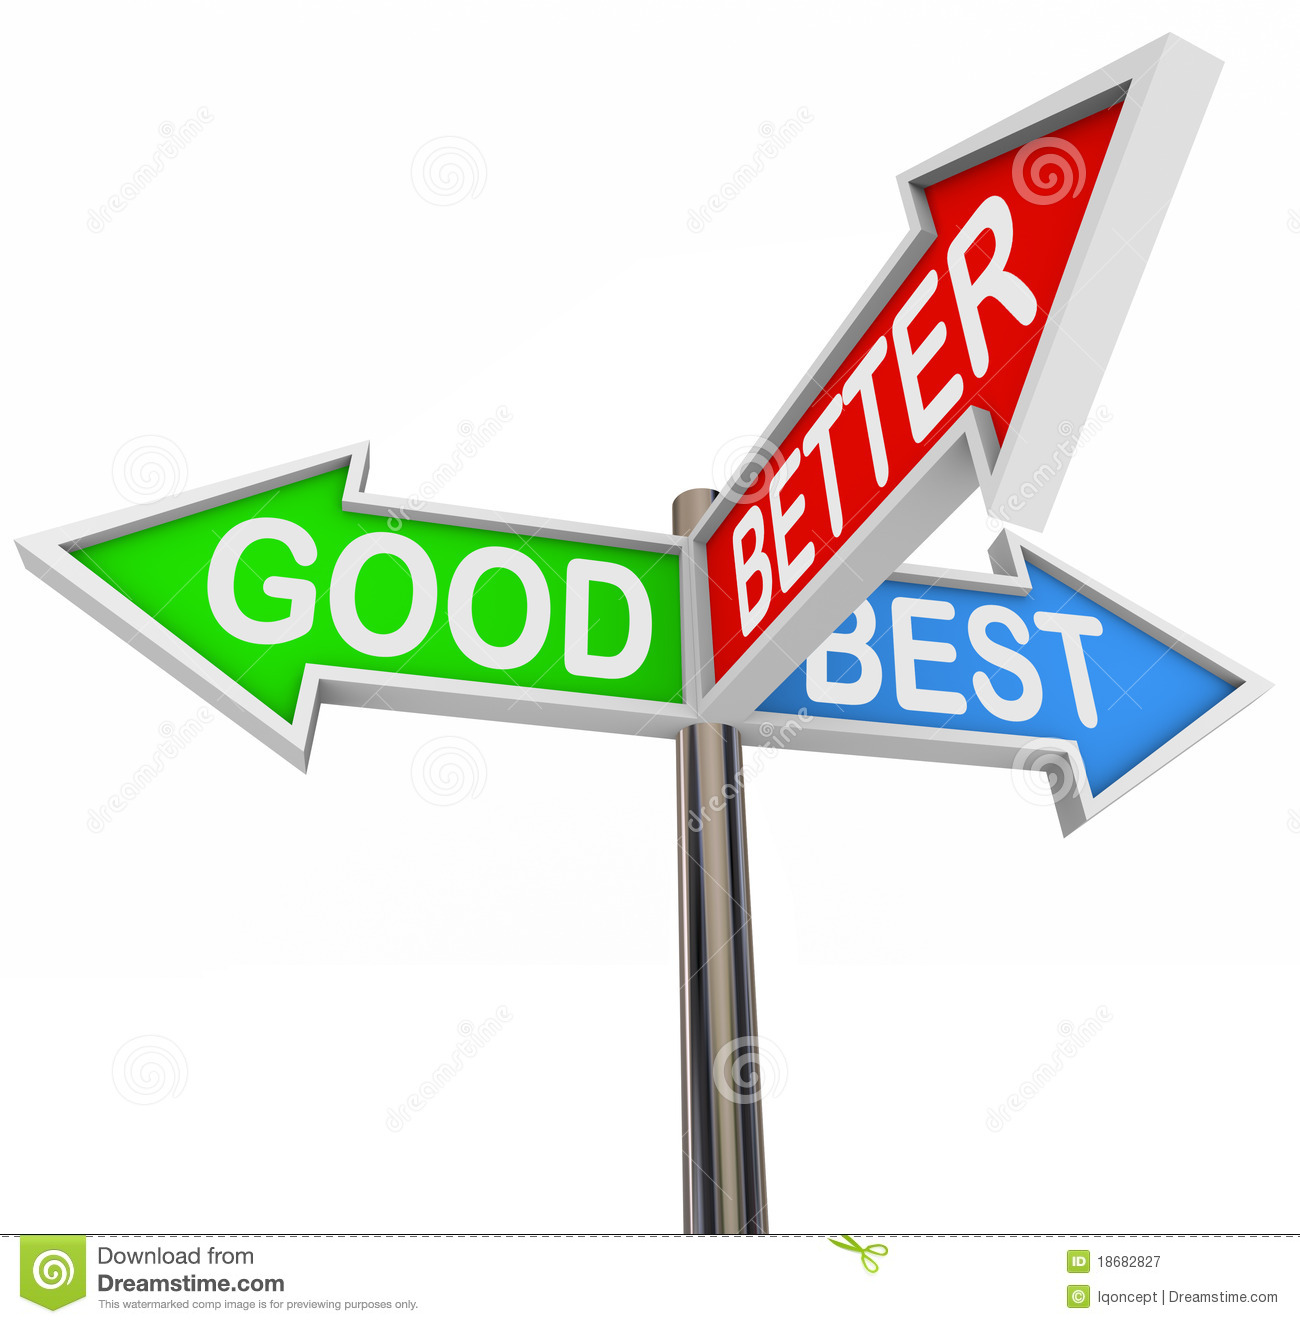 Http Www Dreamstime Com Royalty Free Stock Photography Good Better Best Choices 3 Colorful Arrow Signs Image18682827